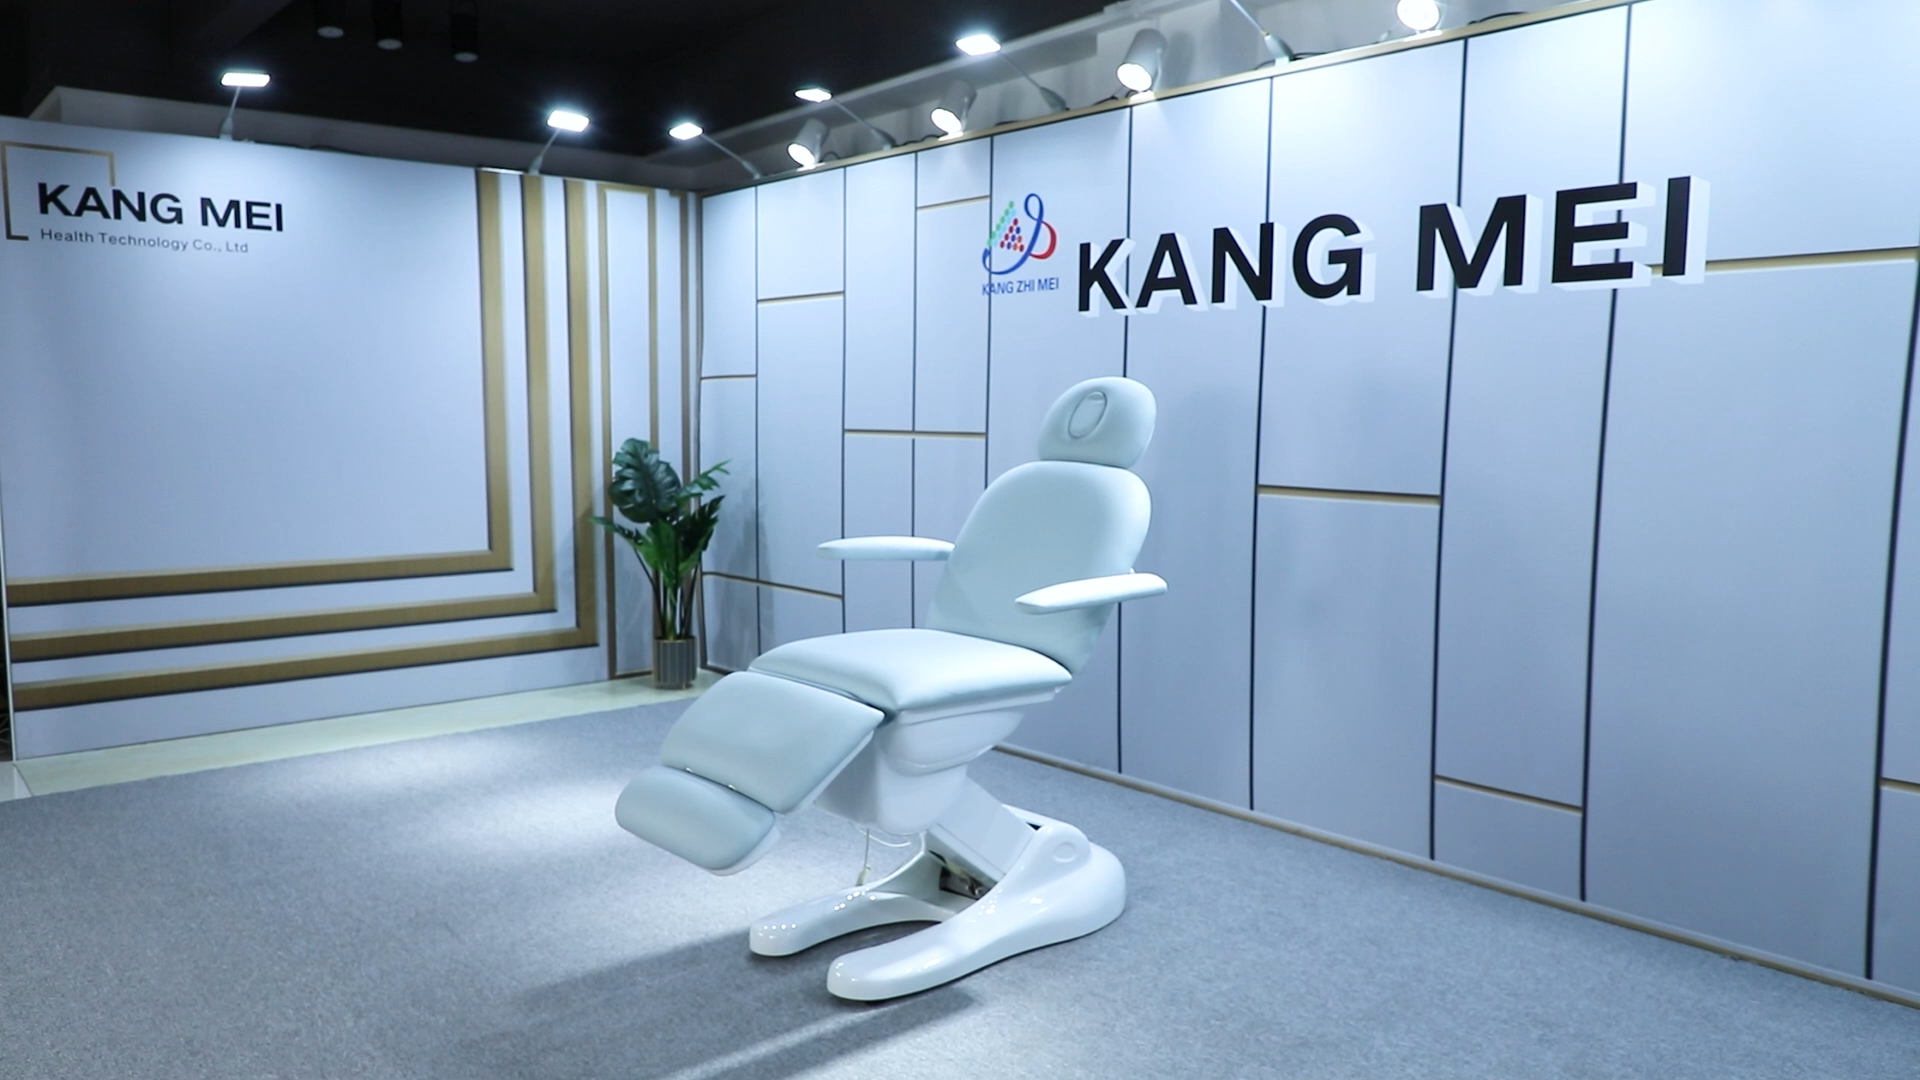 Kangmei Cheap Price 3 CE Electric Motors Beauty Salon Spa Waxing Massage Table Treatment Bed Cosmetic Facial Chair